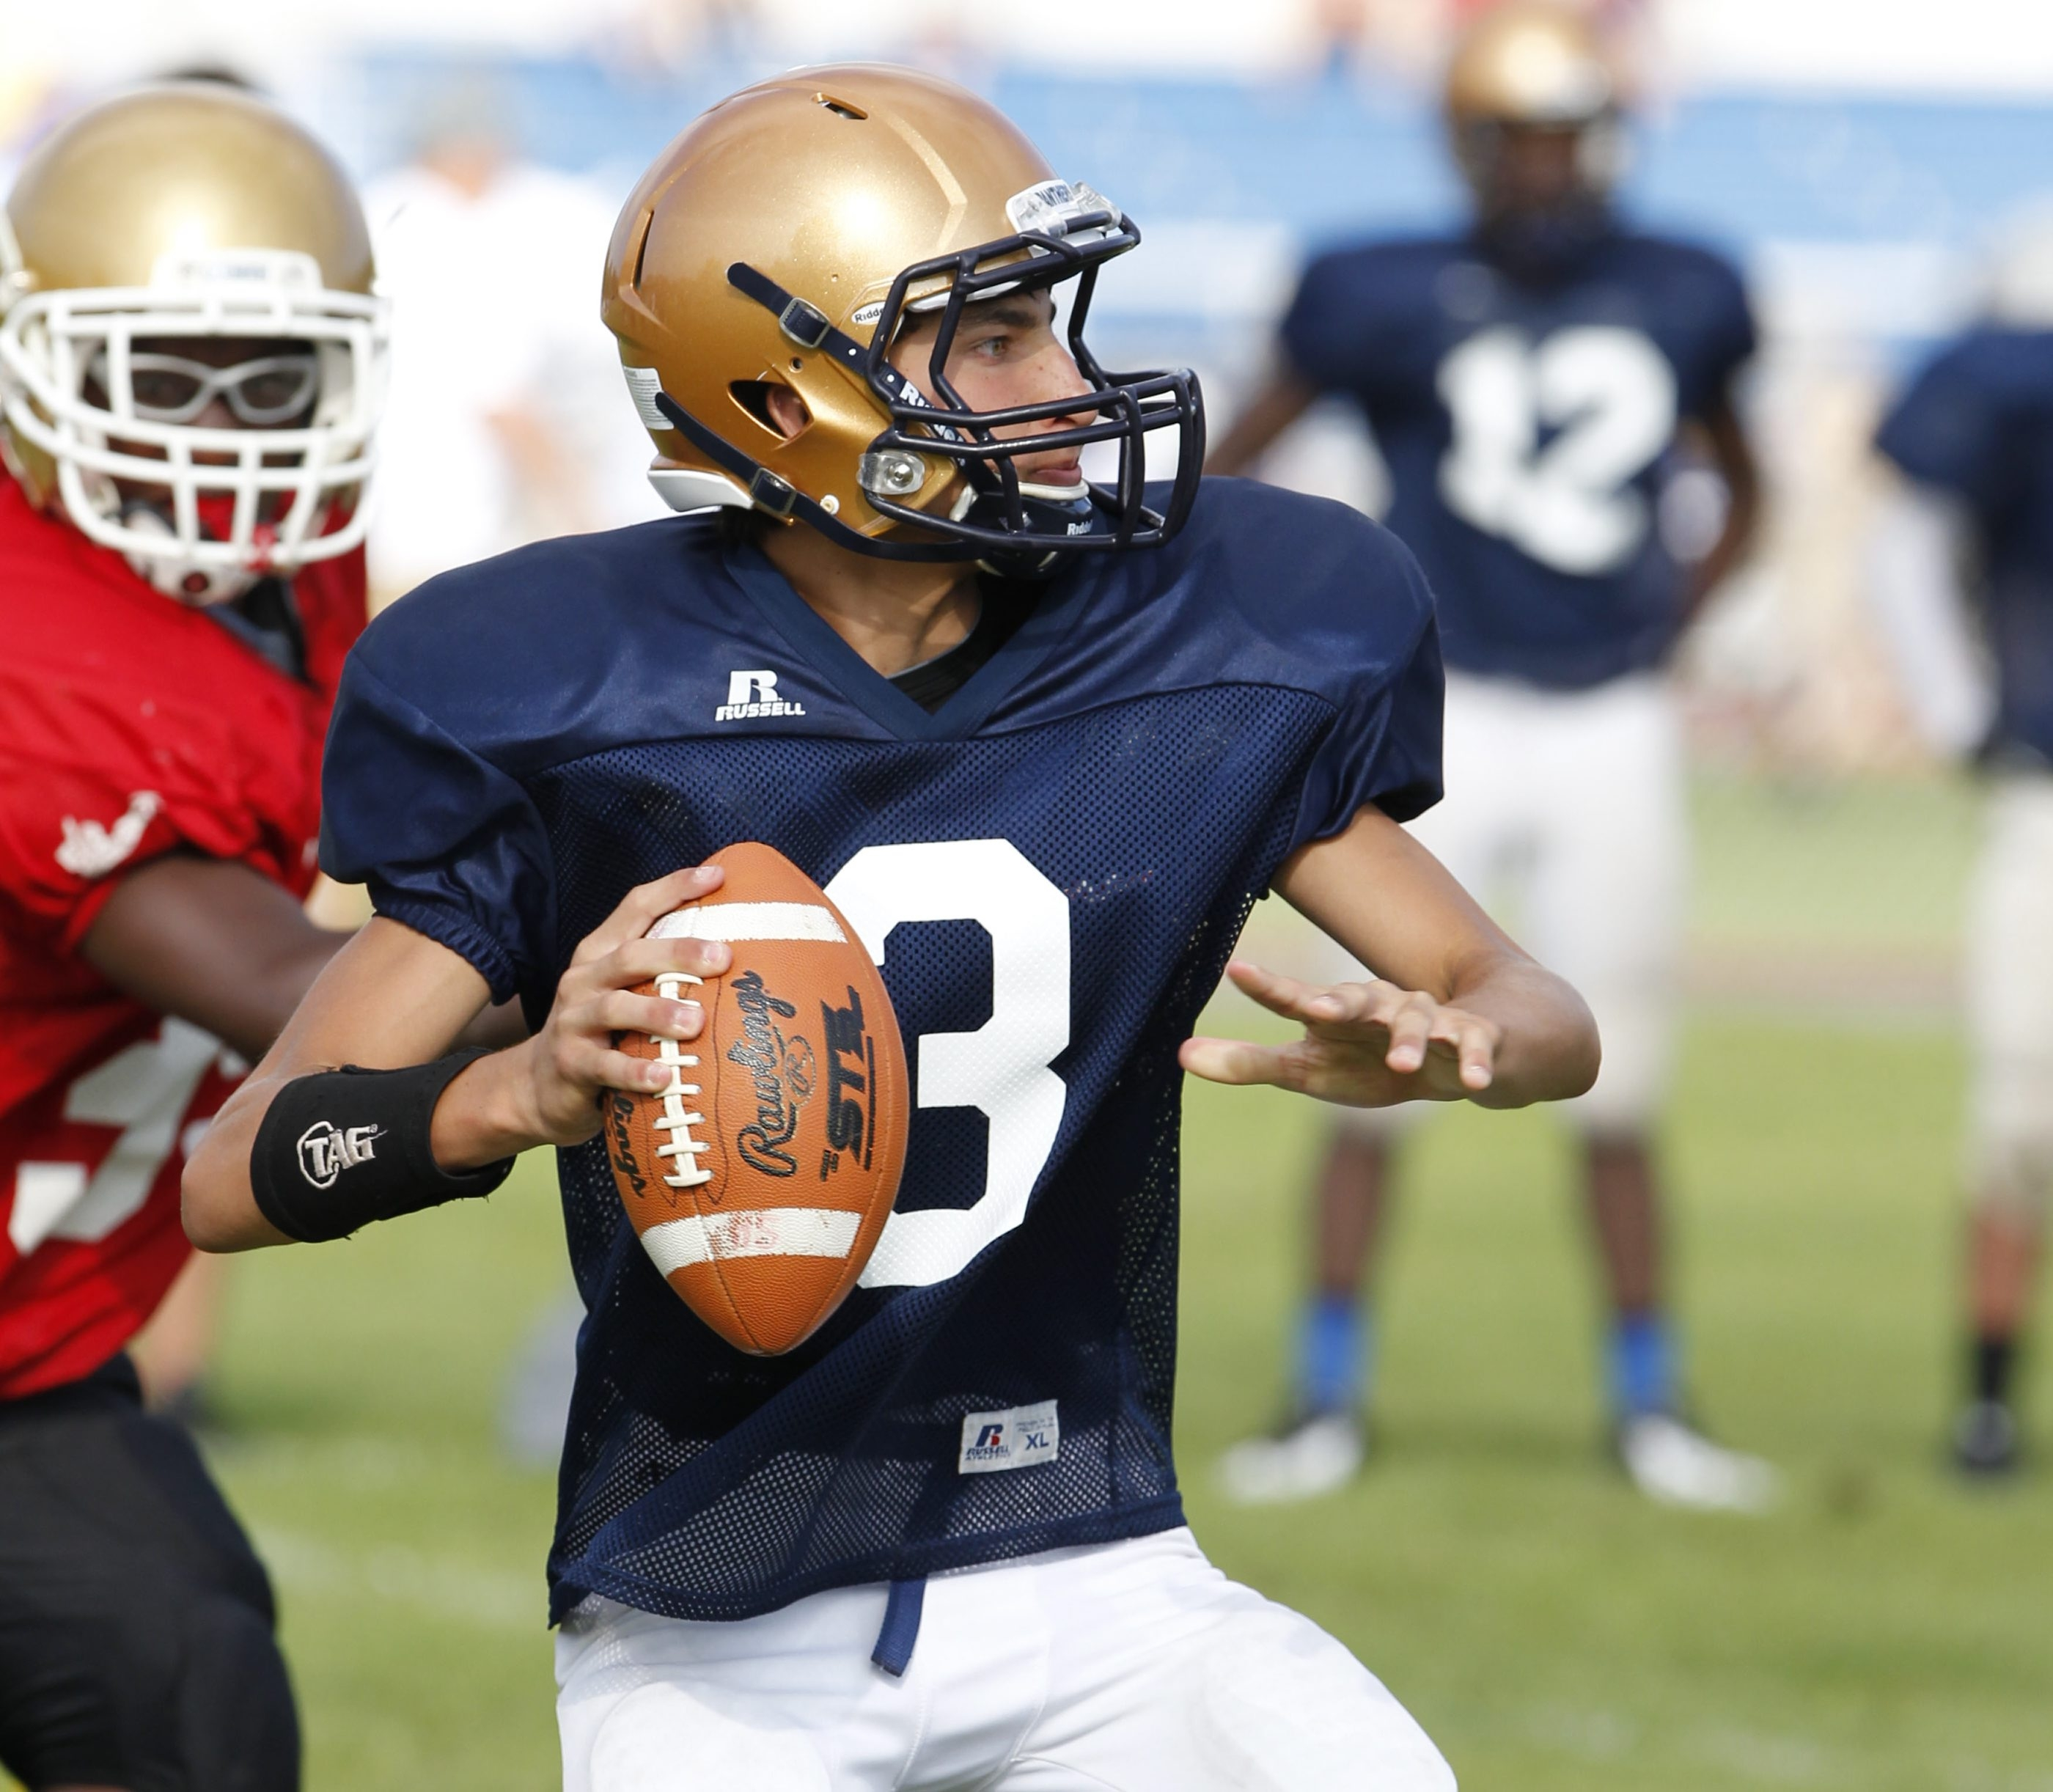 Kevin Torrillo will see time at quarterback for Sweet Home; brother Mike played QB last year.